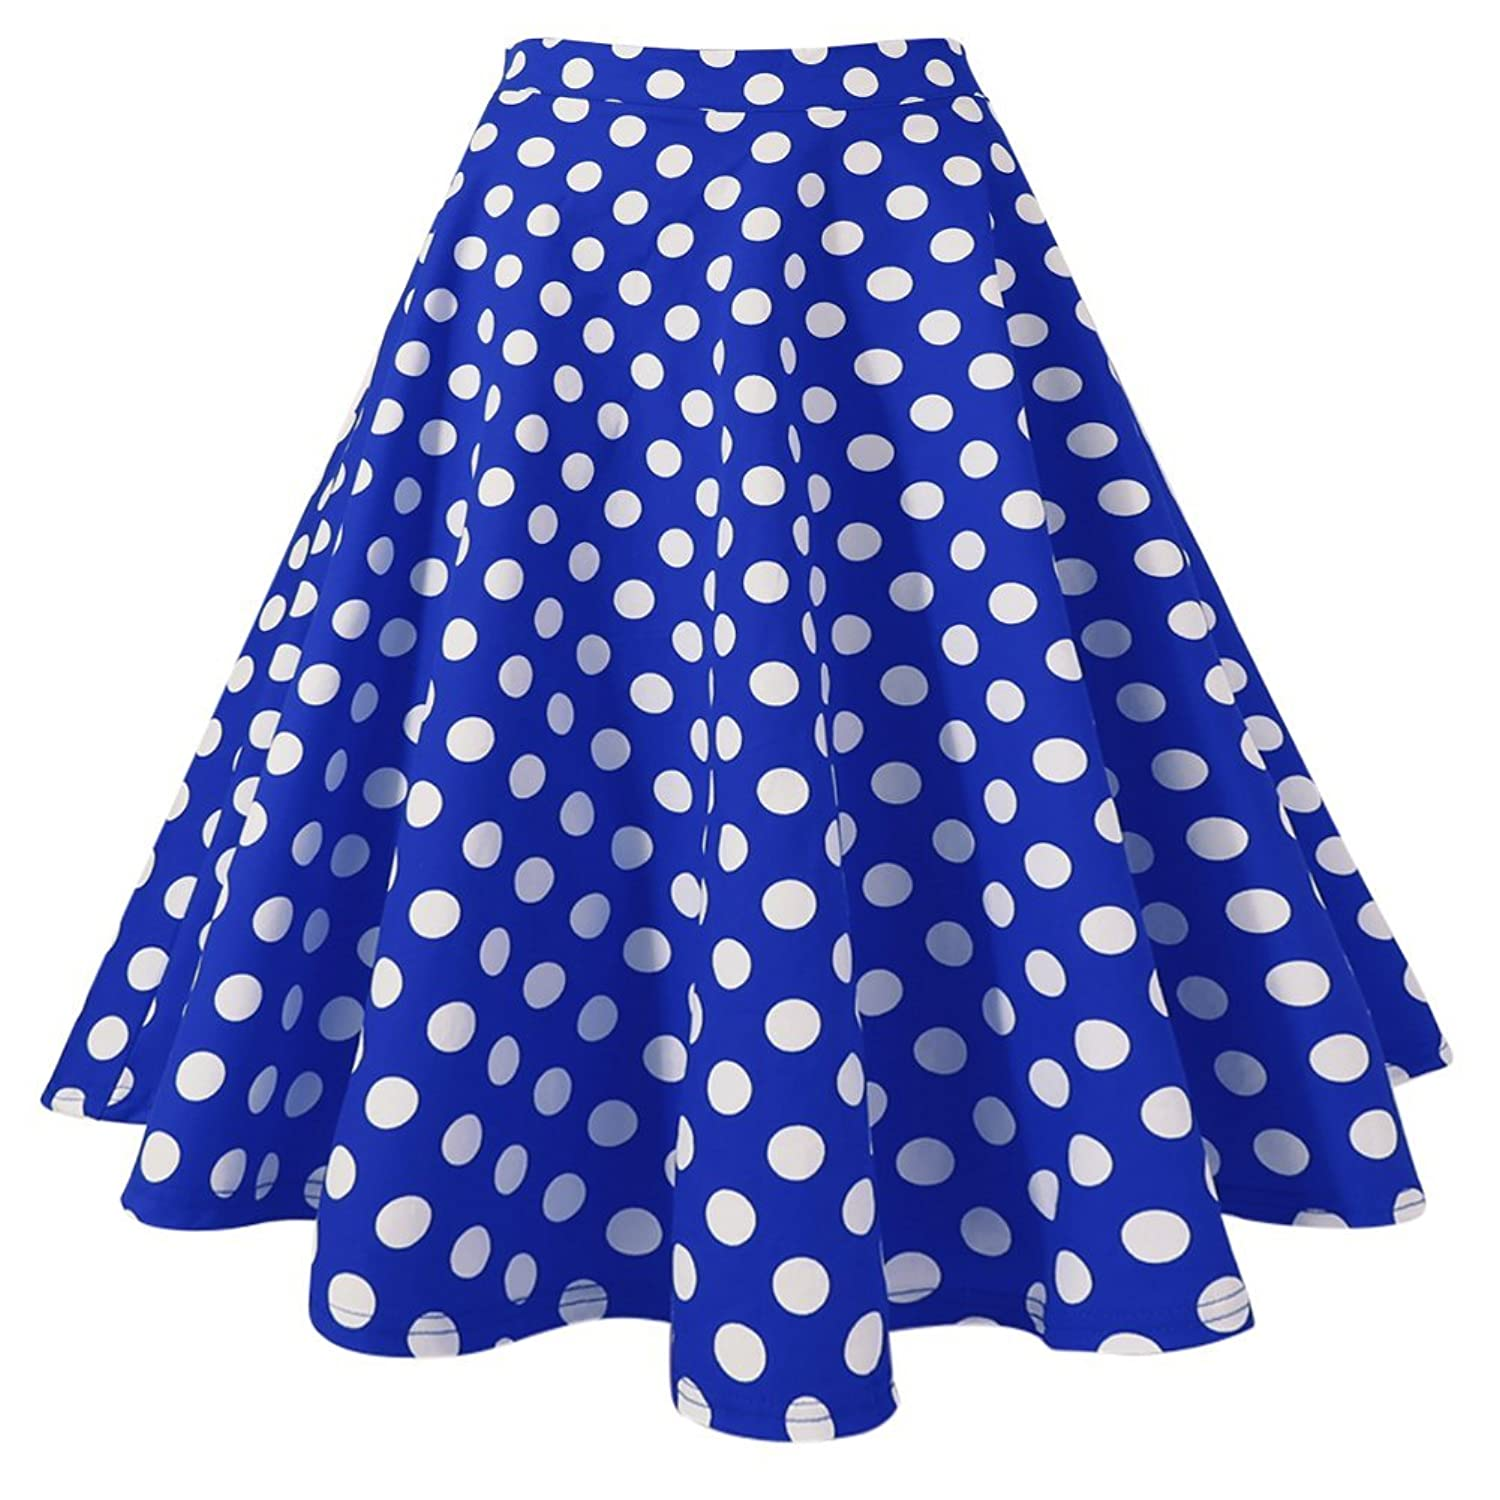 MIOIM® Damen Rock High Waist Knielang Skirt Sommerkleid A-linien Röcke Retro Polka Faltenrock Cocktail Party Kleider